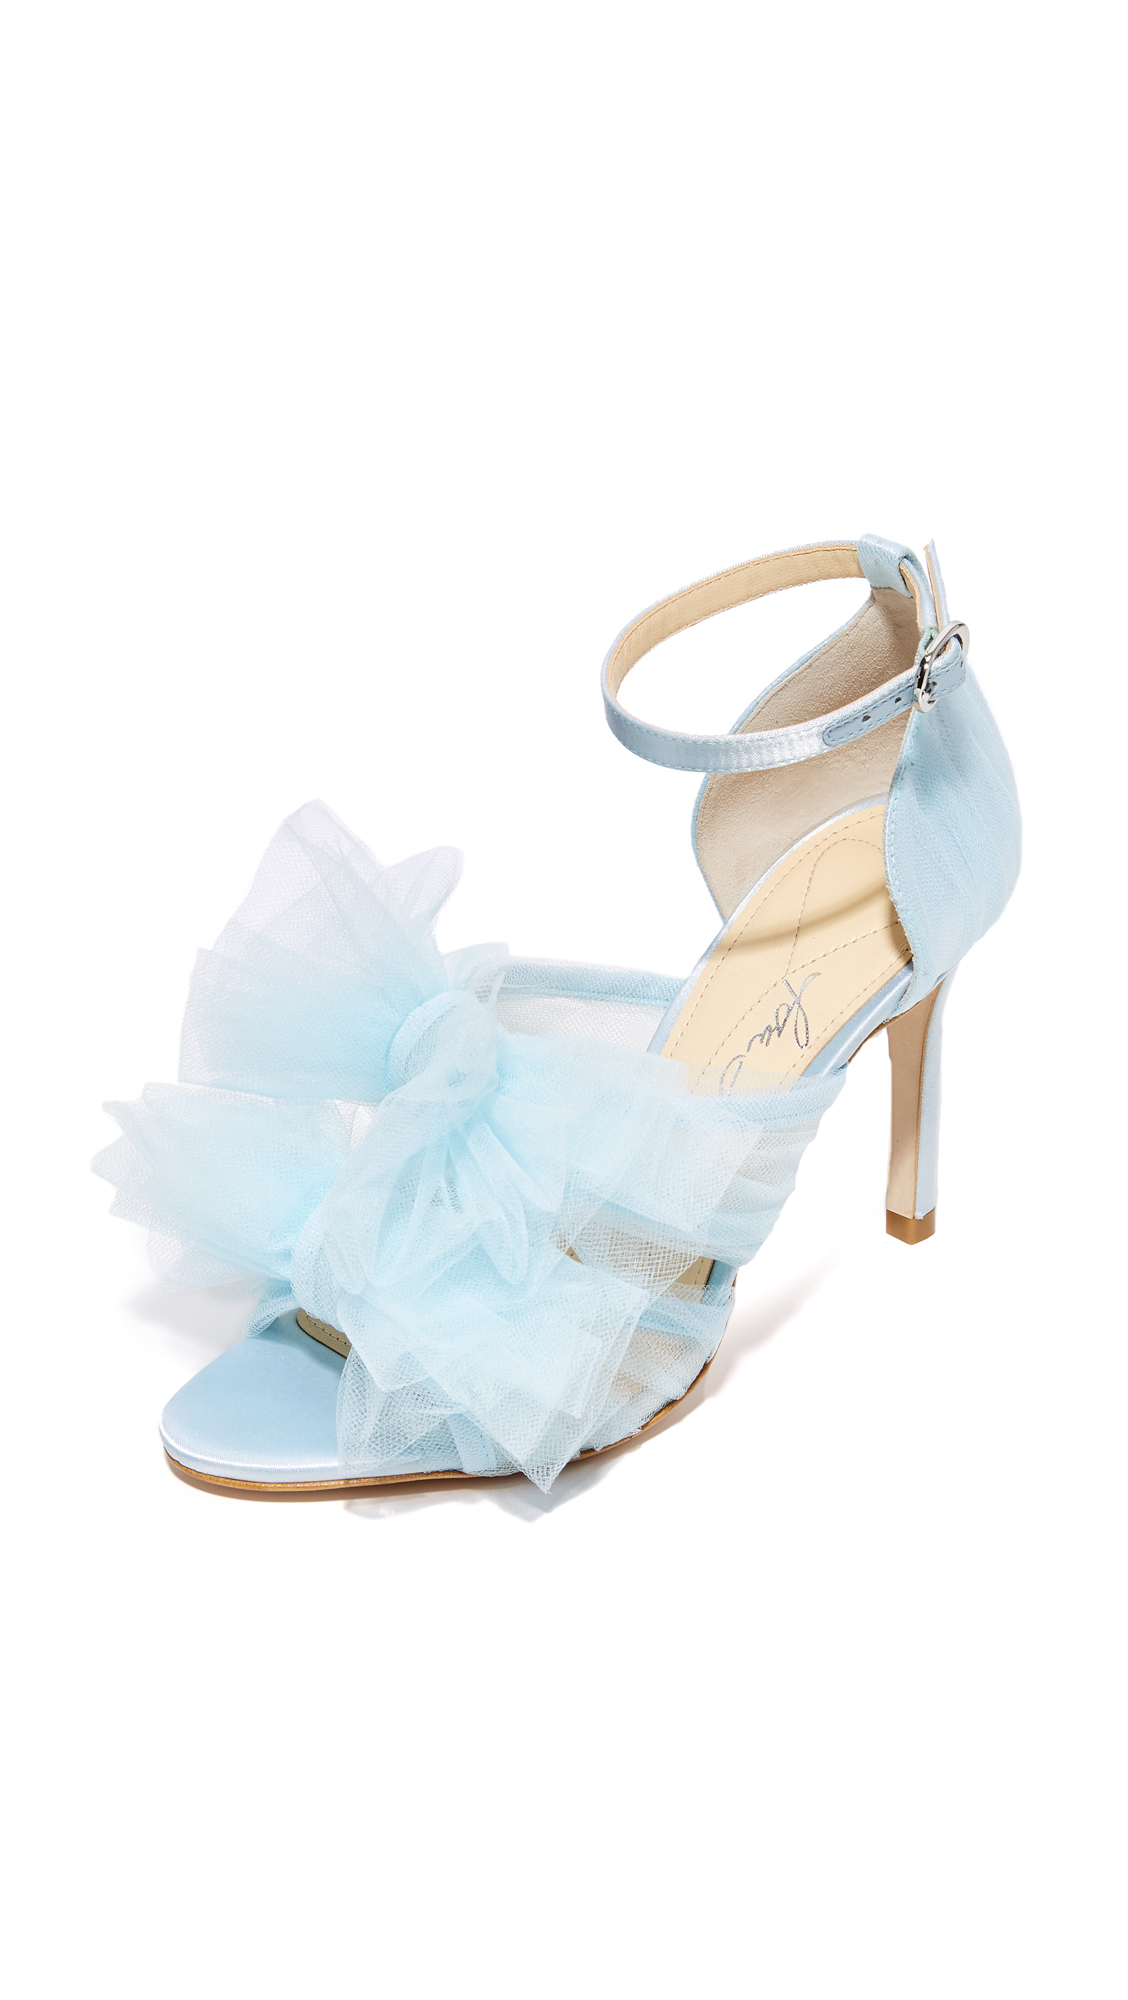 Isa Tapia Gigi Sandals - Blue